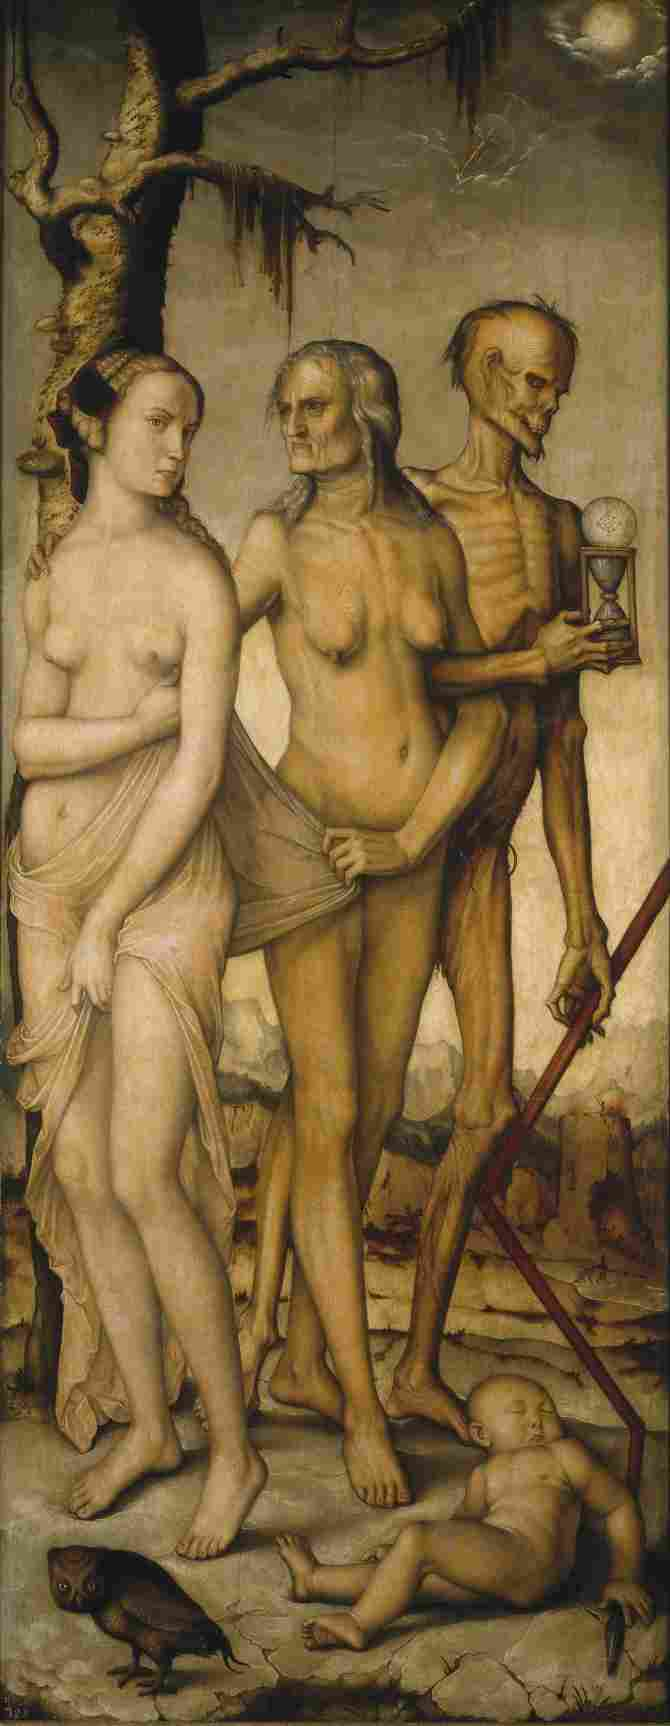 The Ages and Death (Baldung Grien, Hans)